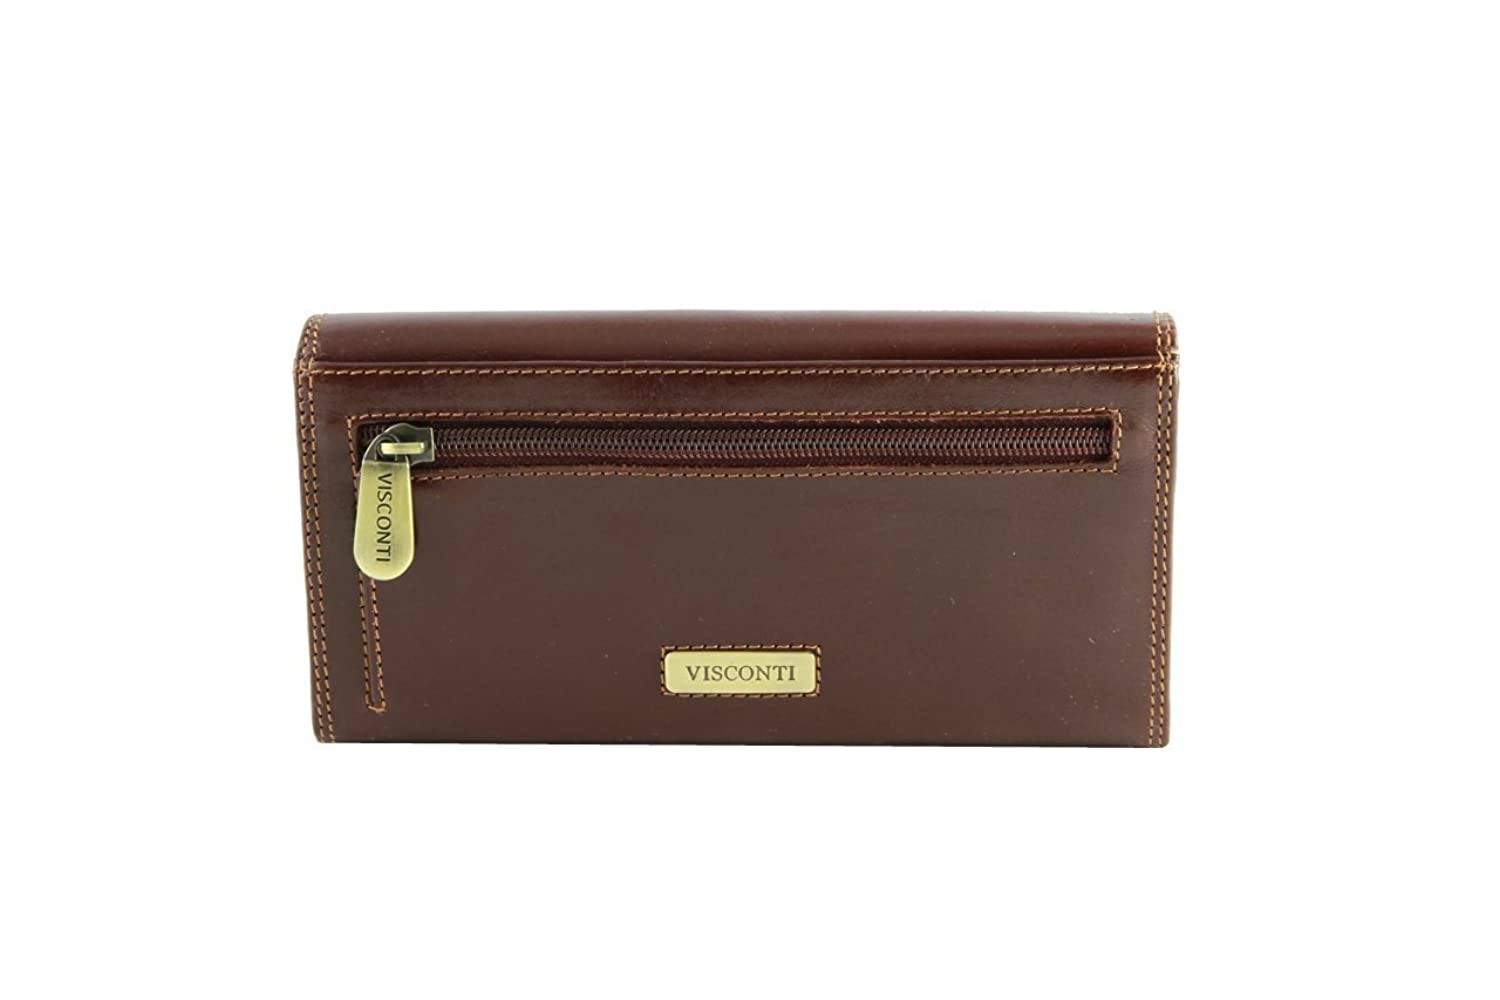 Visconti Monza 10 Ladies Large Soft Leather Checkbook Wallet / Purse